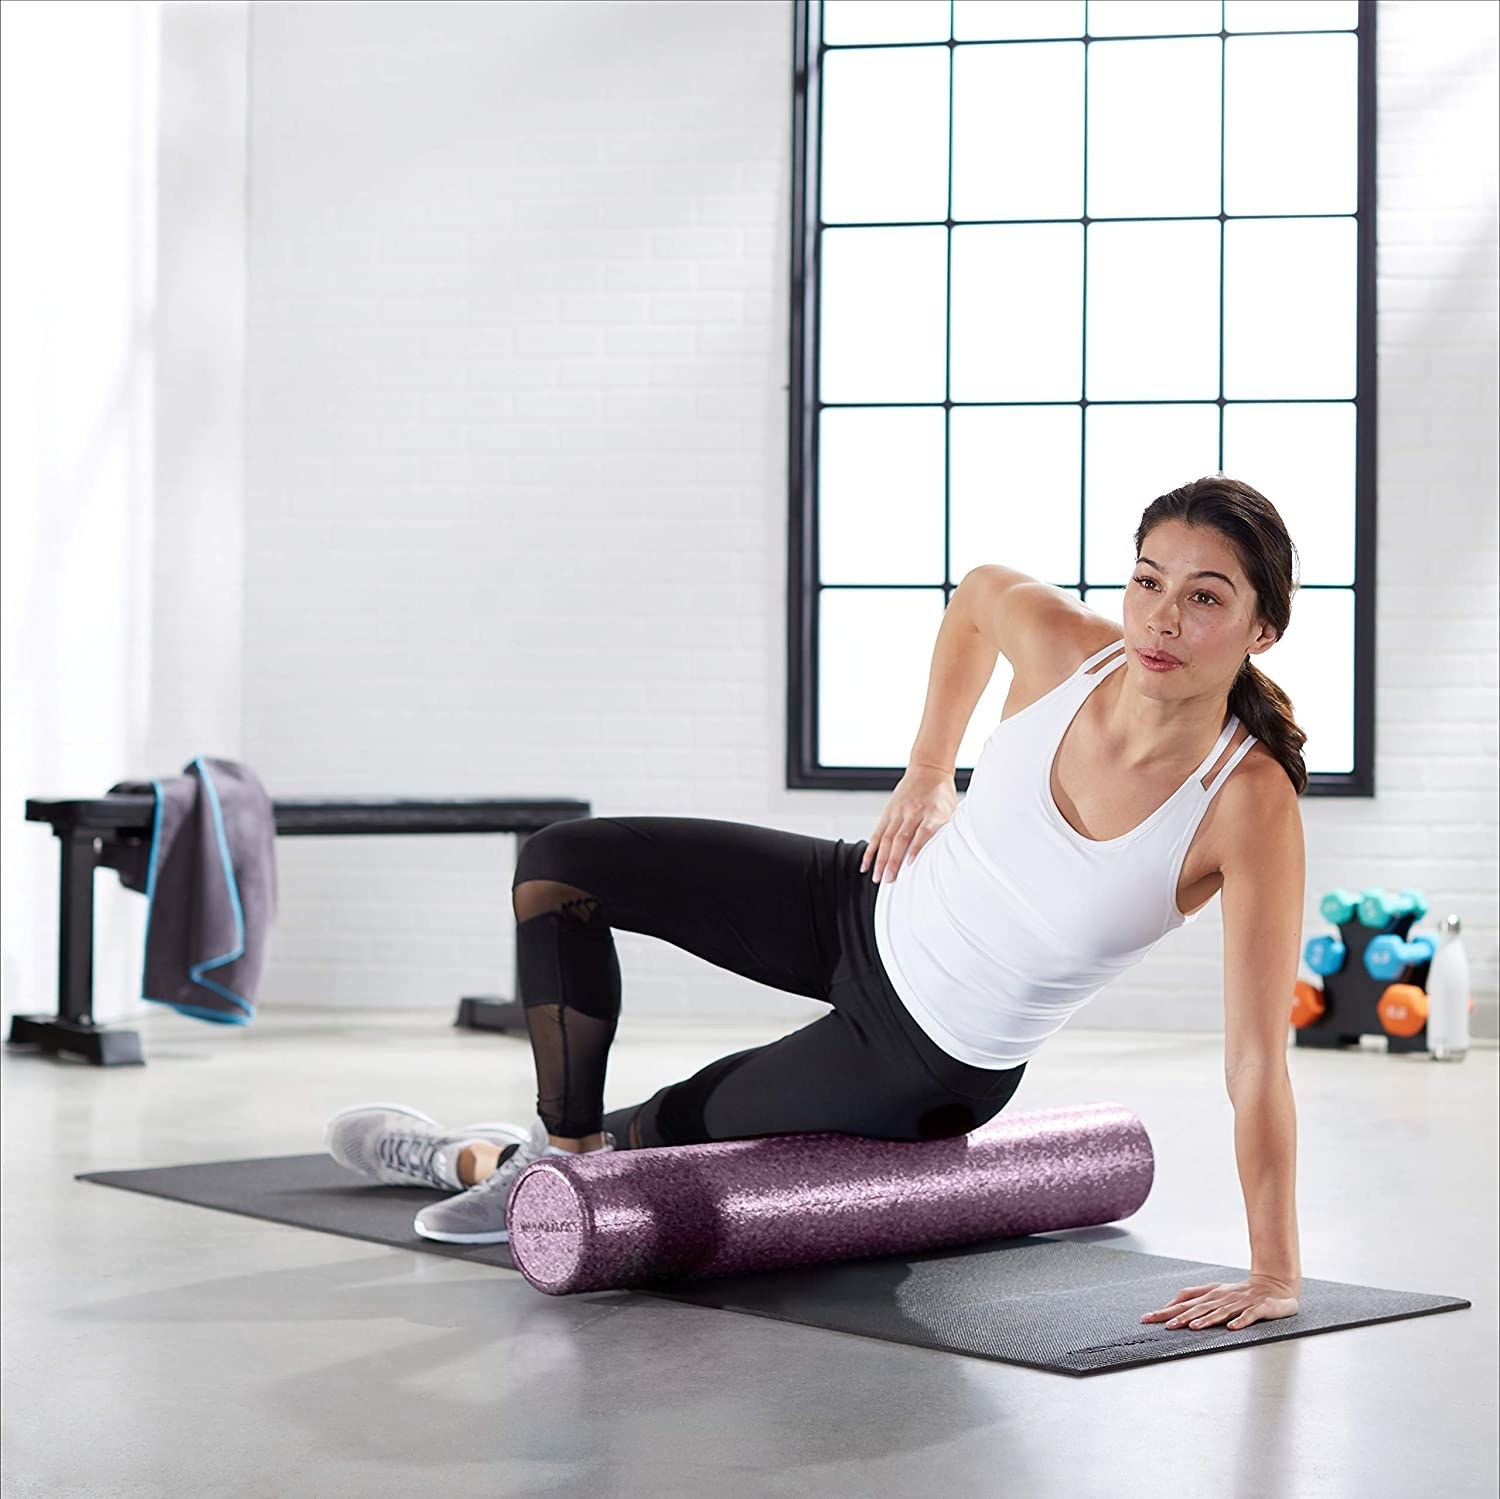 A model working out using the 36-inch purple roller to roll out their leg